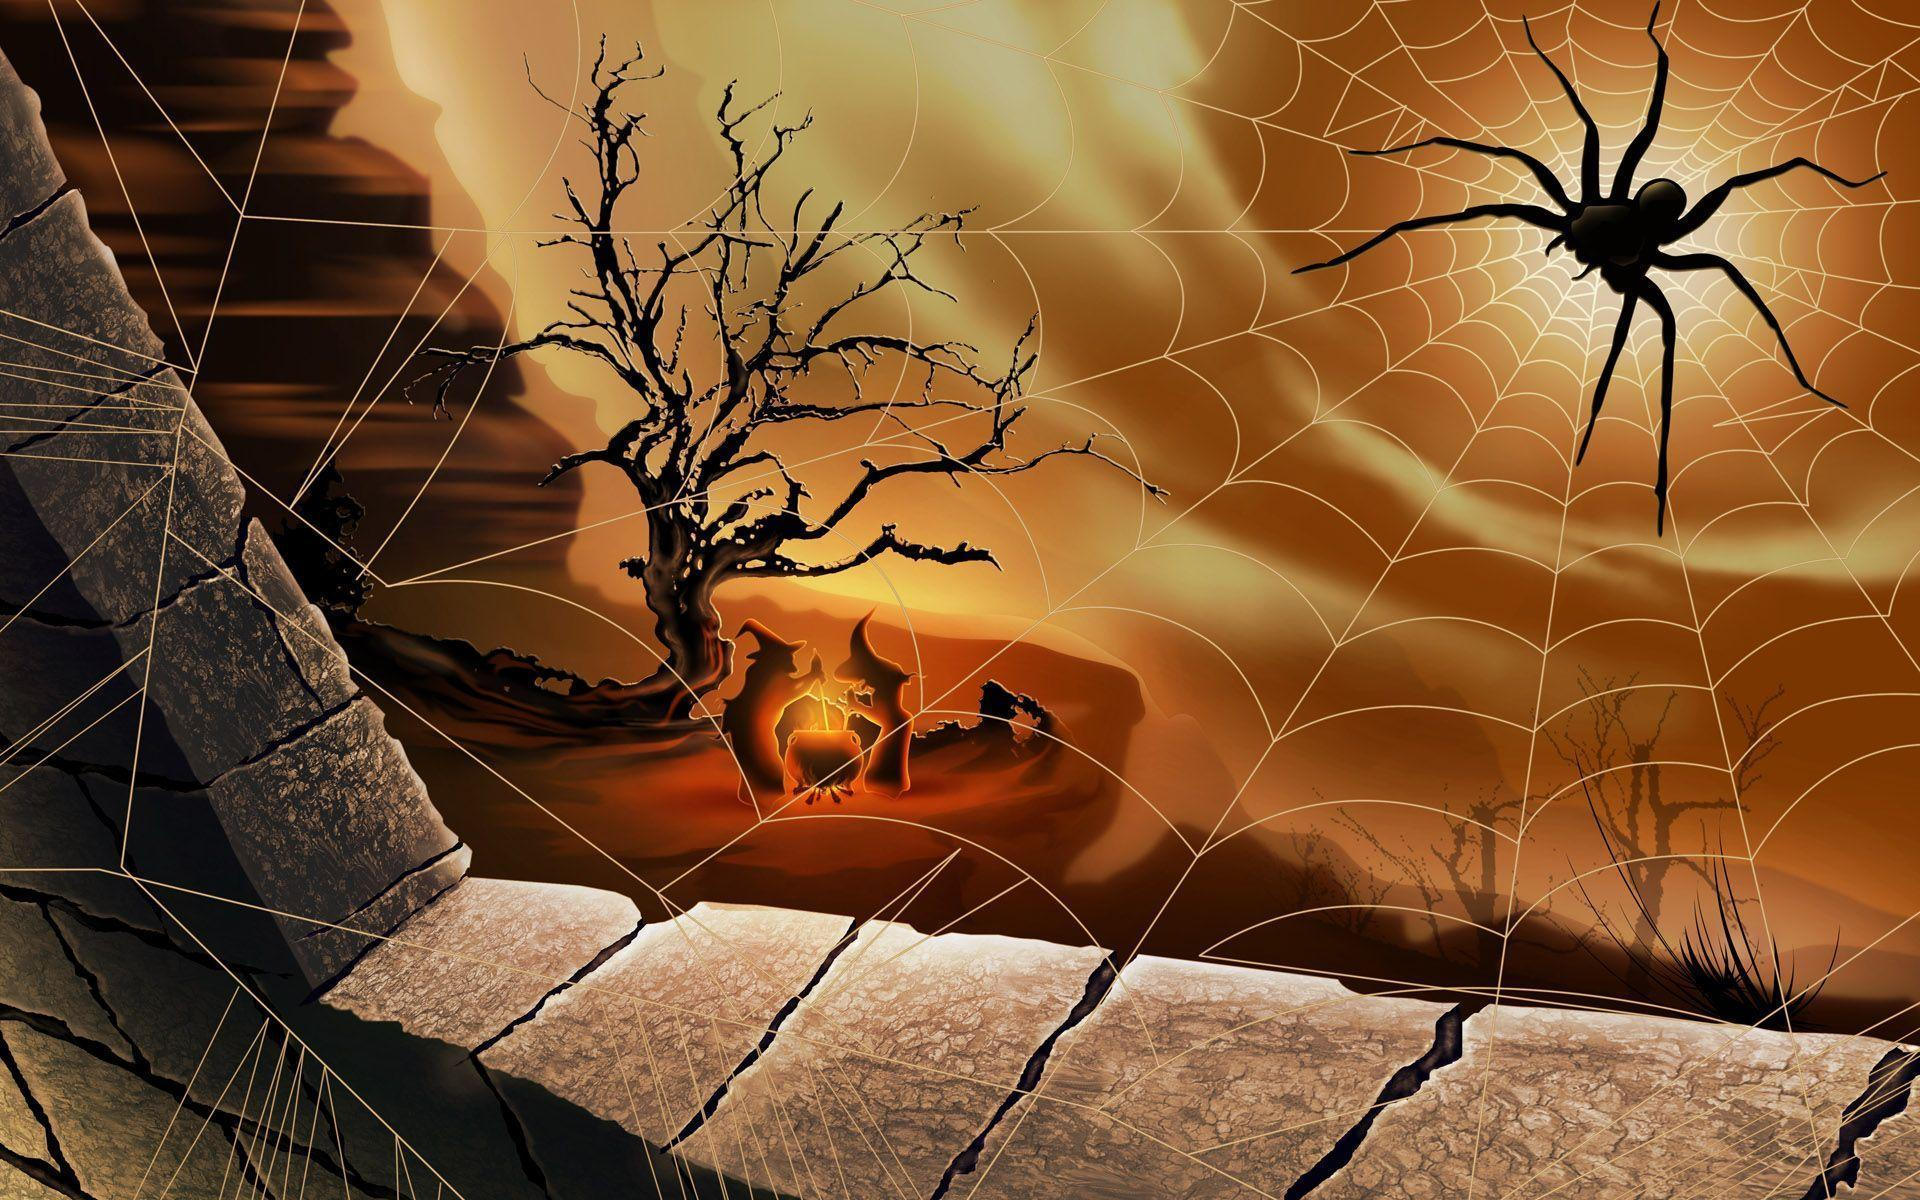 Halloween Spider Net | Smash Wallpapers - Free source for top ...